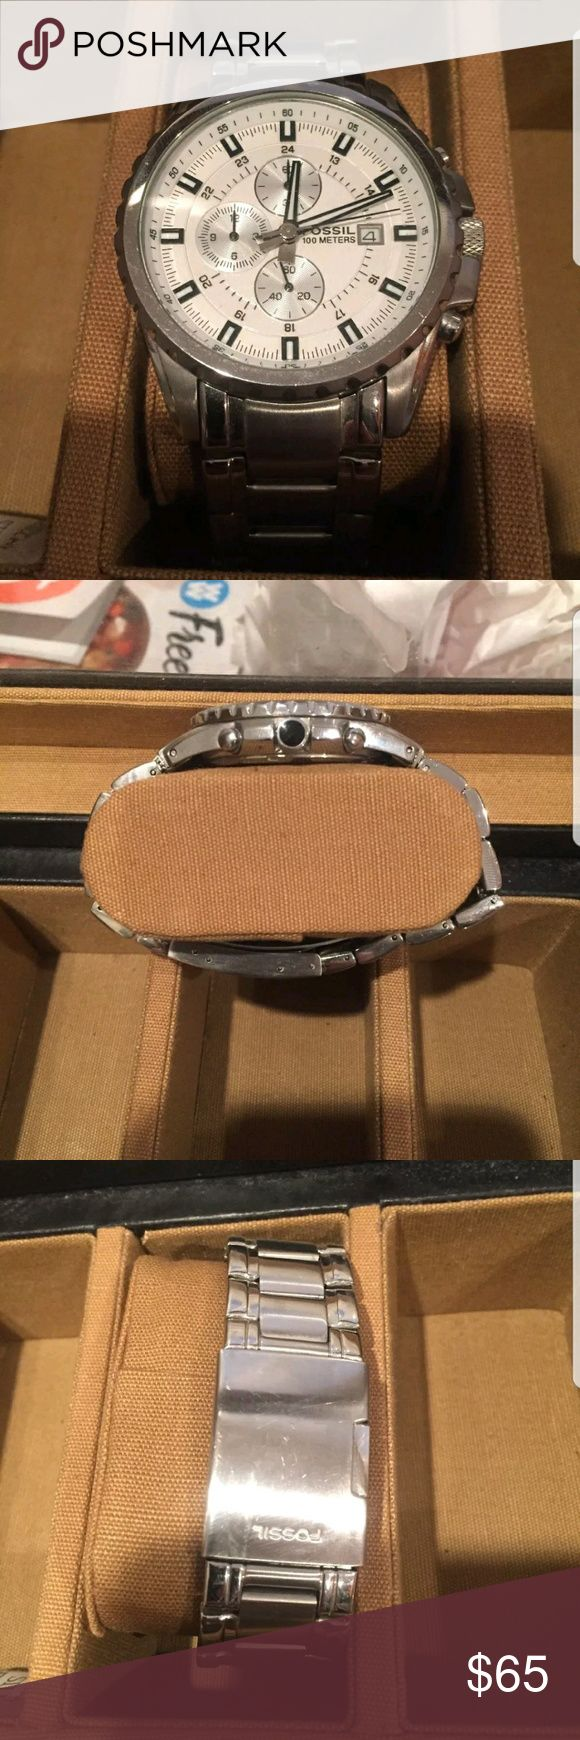 Fossil watch This is a lightly used men's Fossil wristwatch. The face is white with black accents and it has working chronograph dials. Watch was lightly worn and has slight wear marks on bottom of bracelet. Fossil Accessories Watches #menswatchesfossil